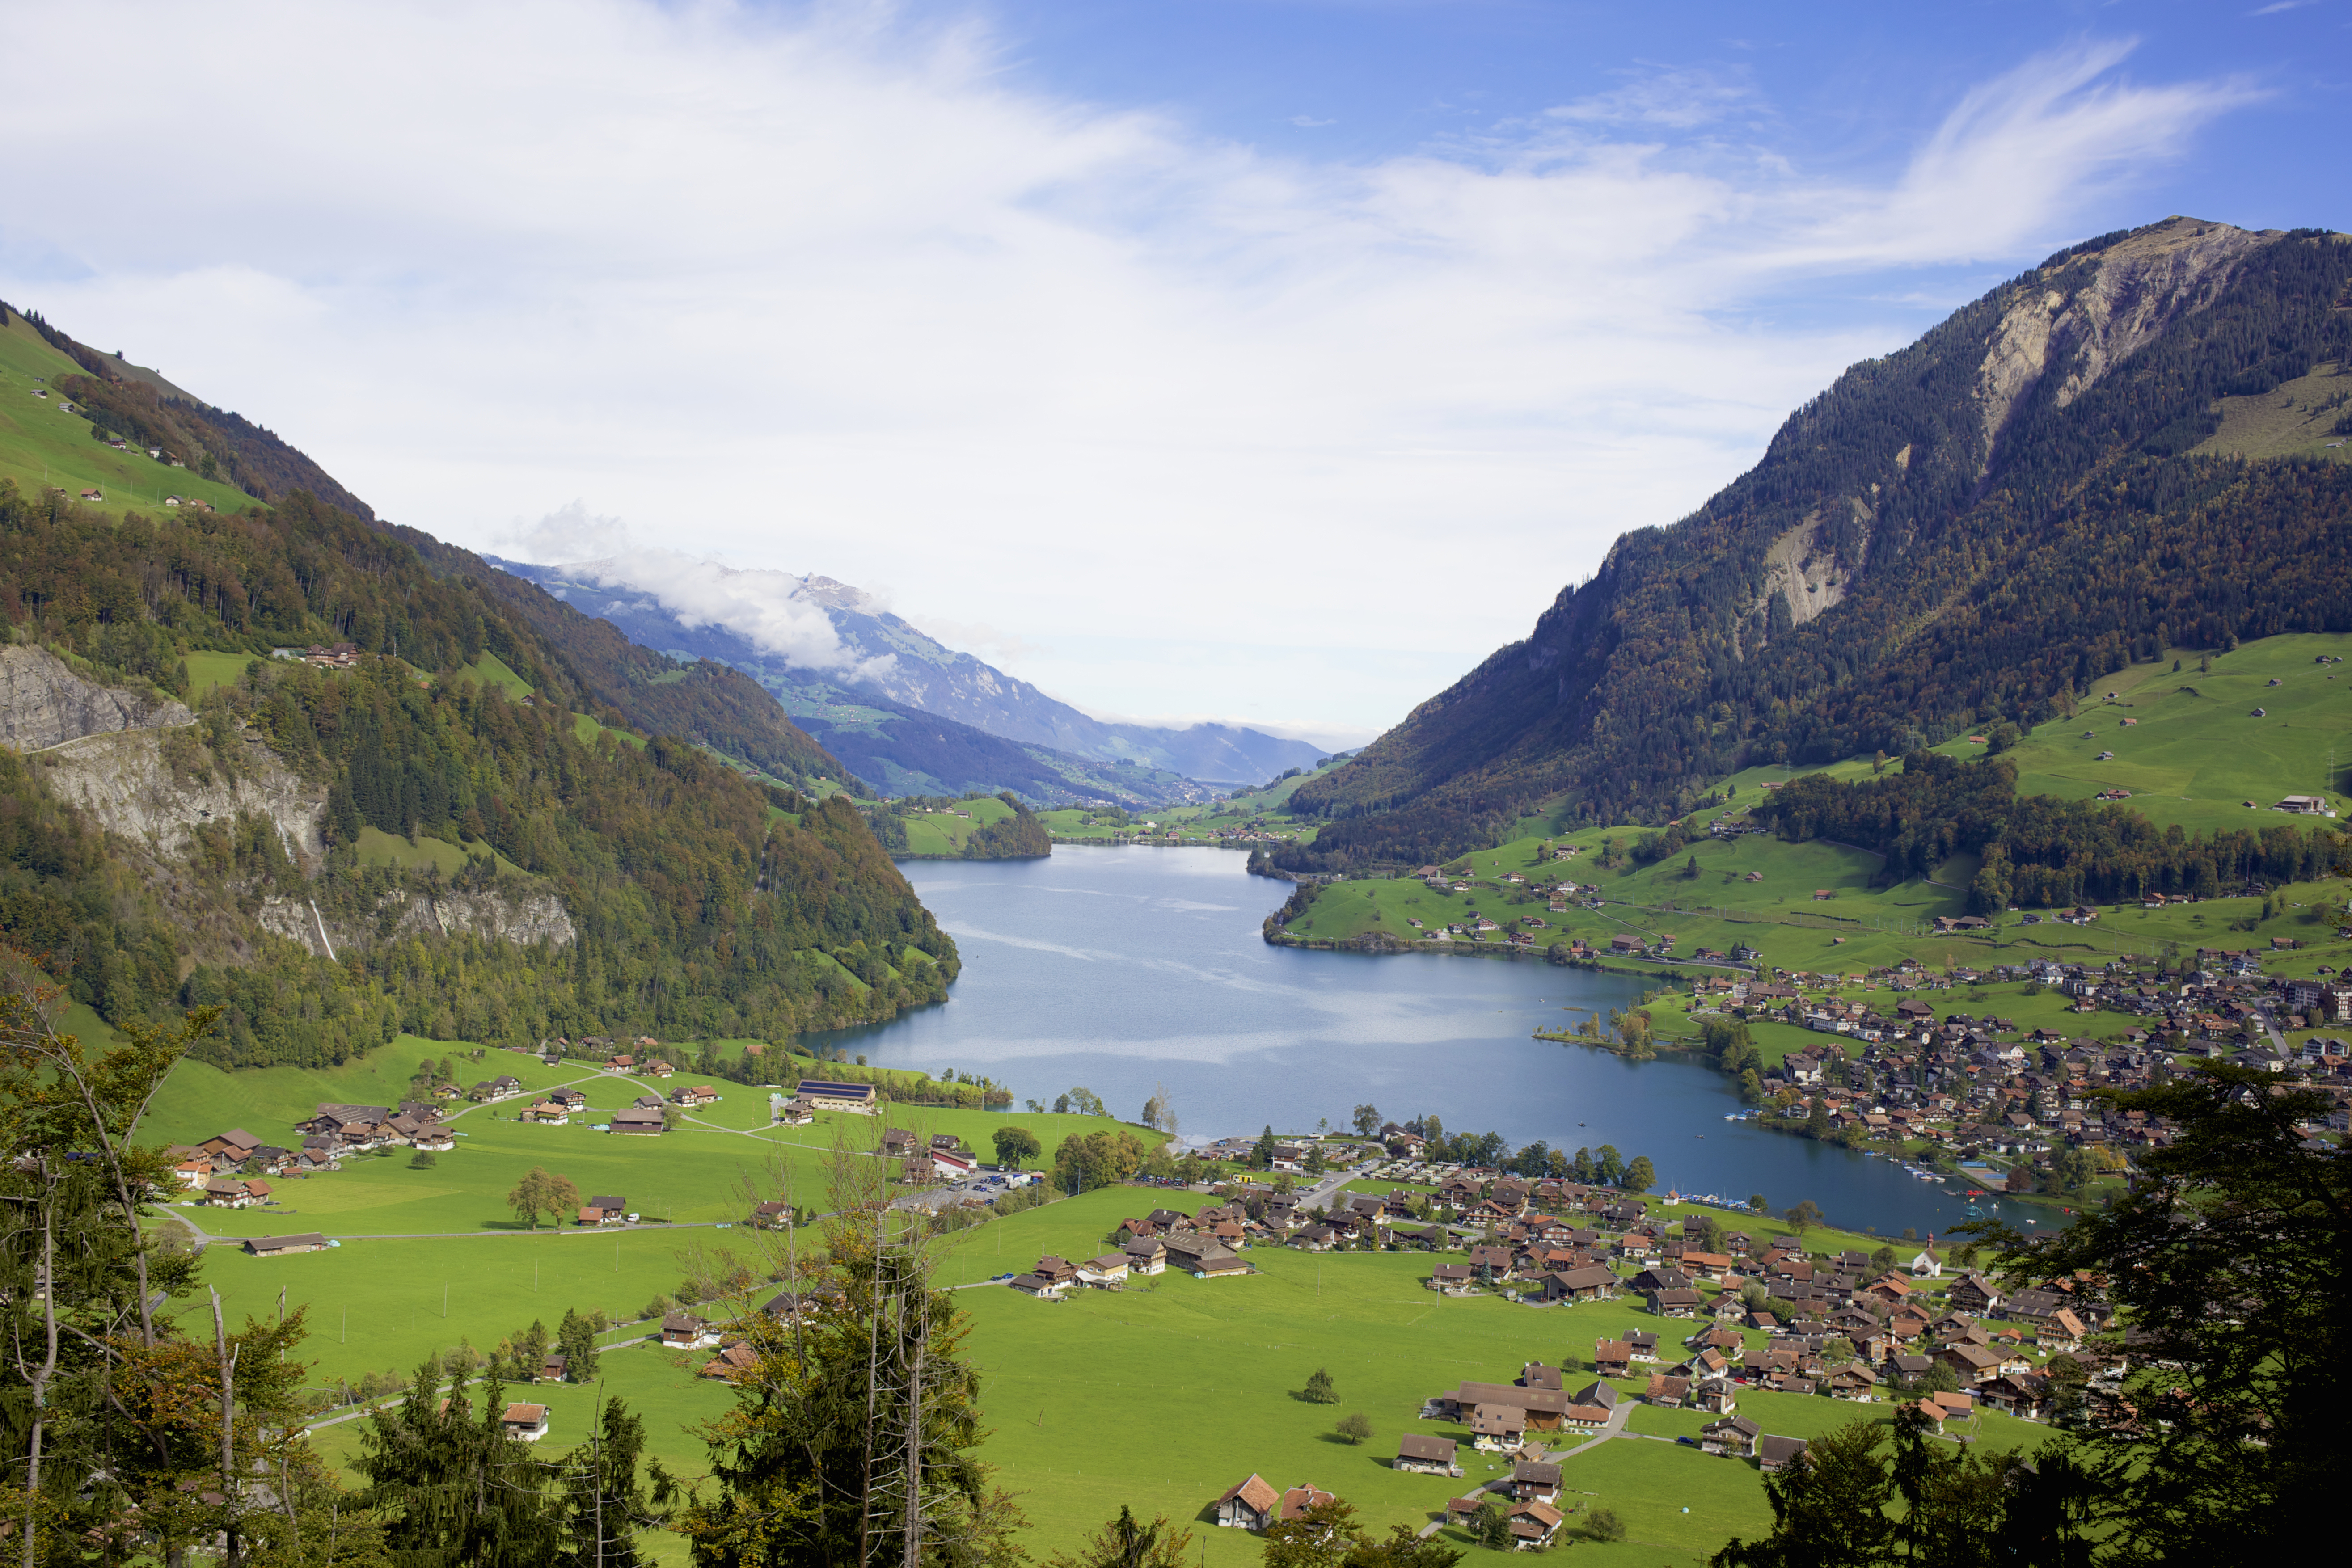 View of mountains and lakeside village, Switzerland